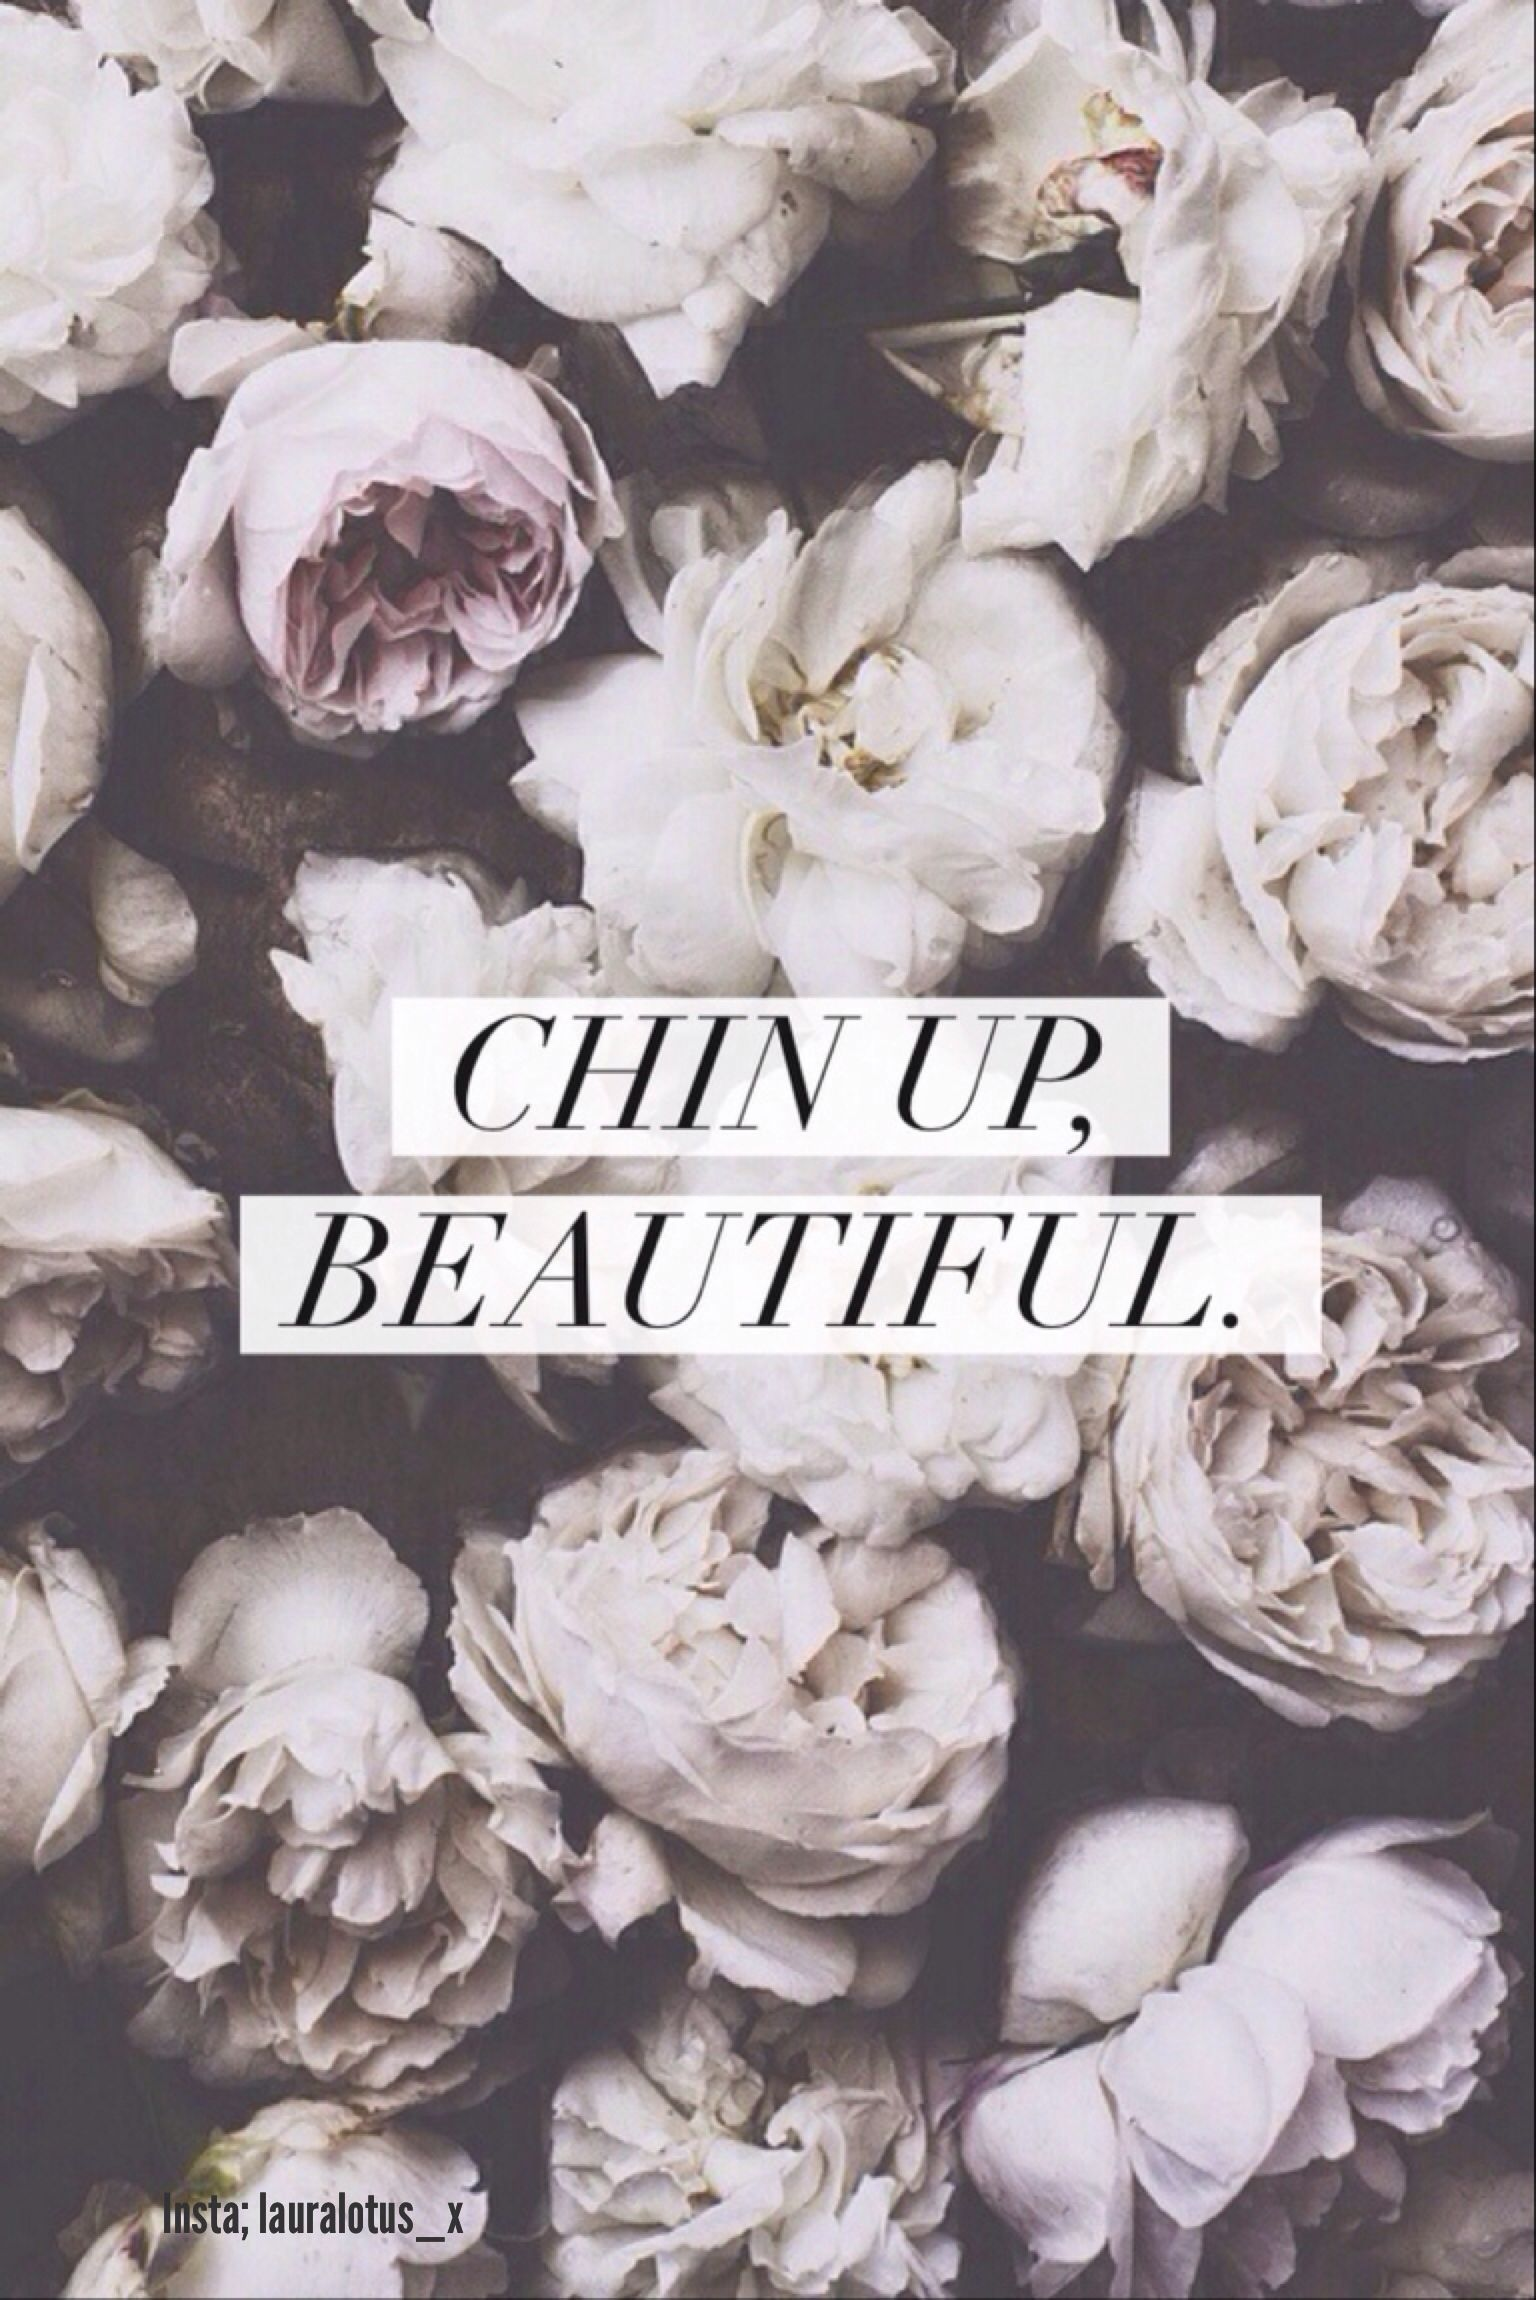 Iphone 5 wallpaper iphone background technology tumblr quotes chin up beautiful xx izmirmasajfo Gallery